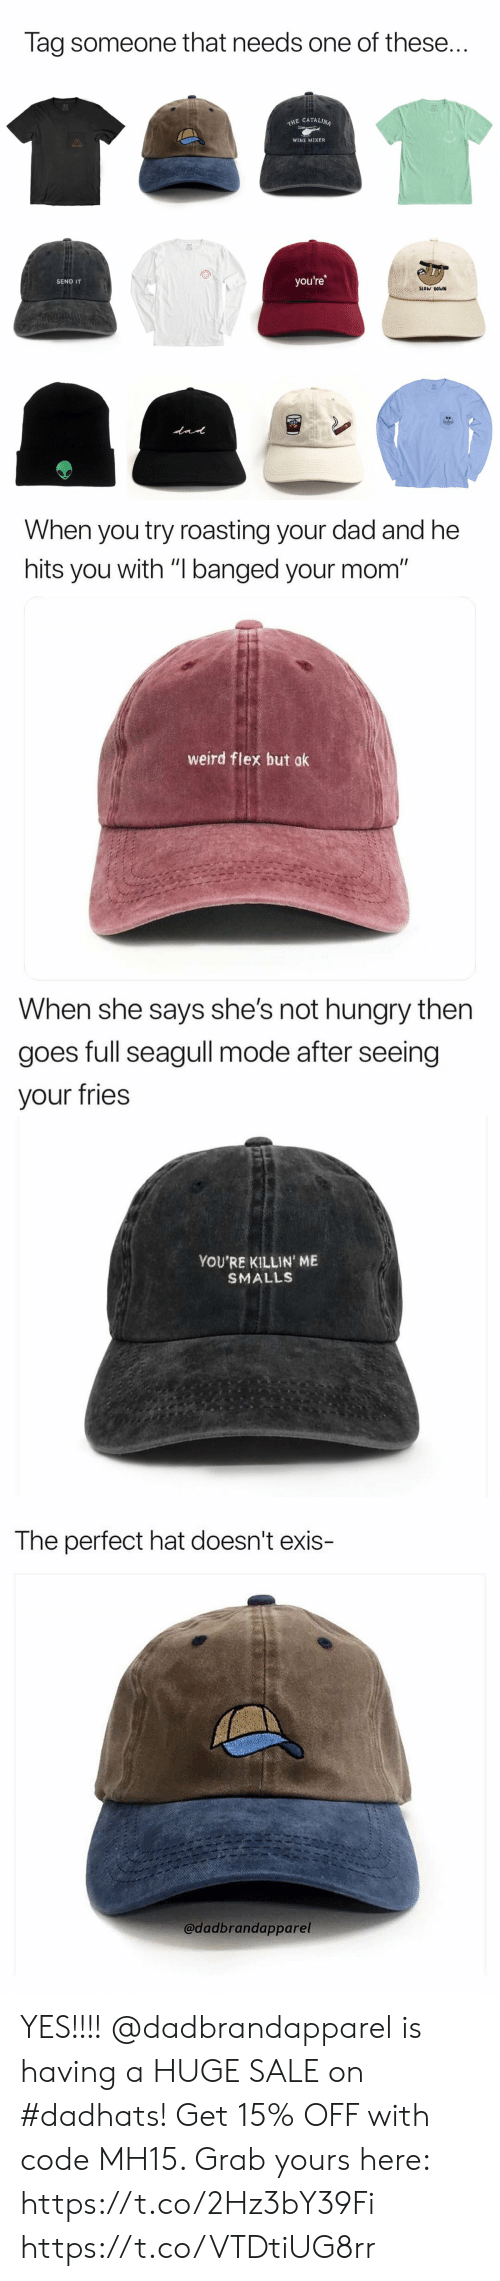 """Dad, Flexing, and Funny: Tag someone that needs one of these..  E CATALINA  WINE MIXER  you're  SEND IT  SLOW DOWN   When you try roasting your dad and he  hits you with """"I banged your mom""""  weird flex but ok   When she says she's not nungry tnen  goes full seagull mode after seeing  your fries  YOU'RE KILLIN' ME  SMALLS   The perfect hat doesn't exis-  @dadbrandapparel YES!!!! @dadbrandapparel is having a HUGE SALE on #dadhats! Get 15% OFF with code MH15. Grab yours here: https://t.co/2Hz3bY39Fi https://t.co/VTDtiUG8rr"""